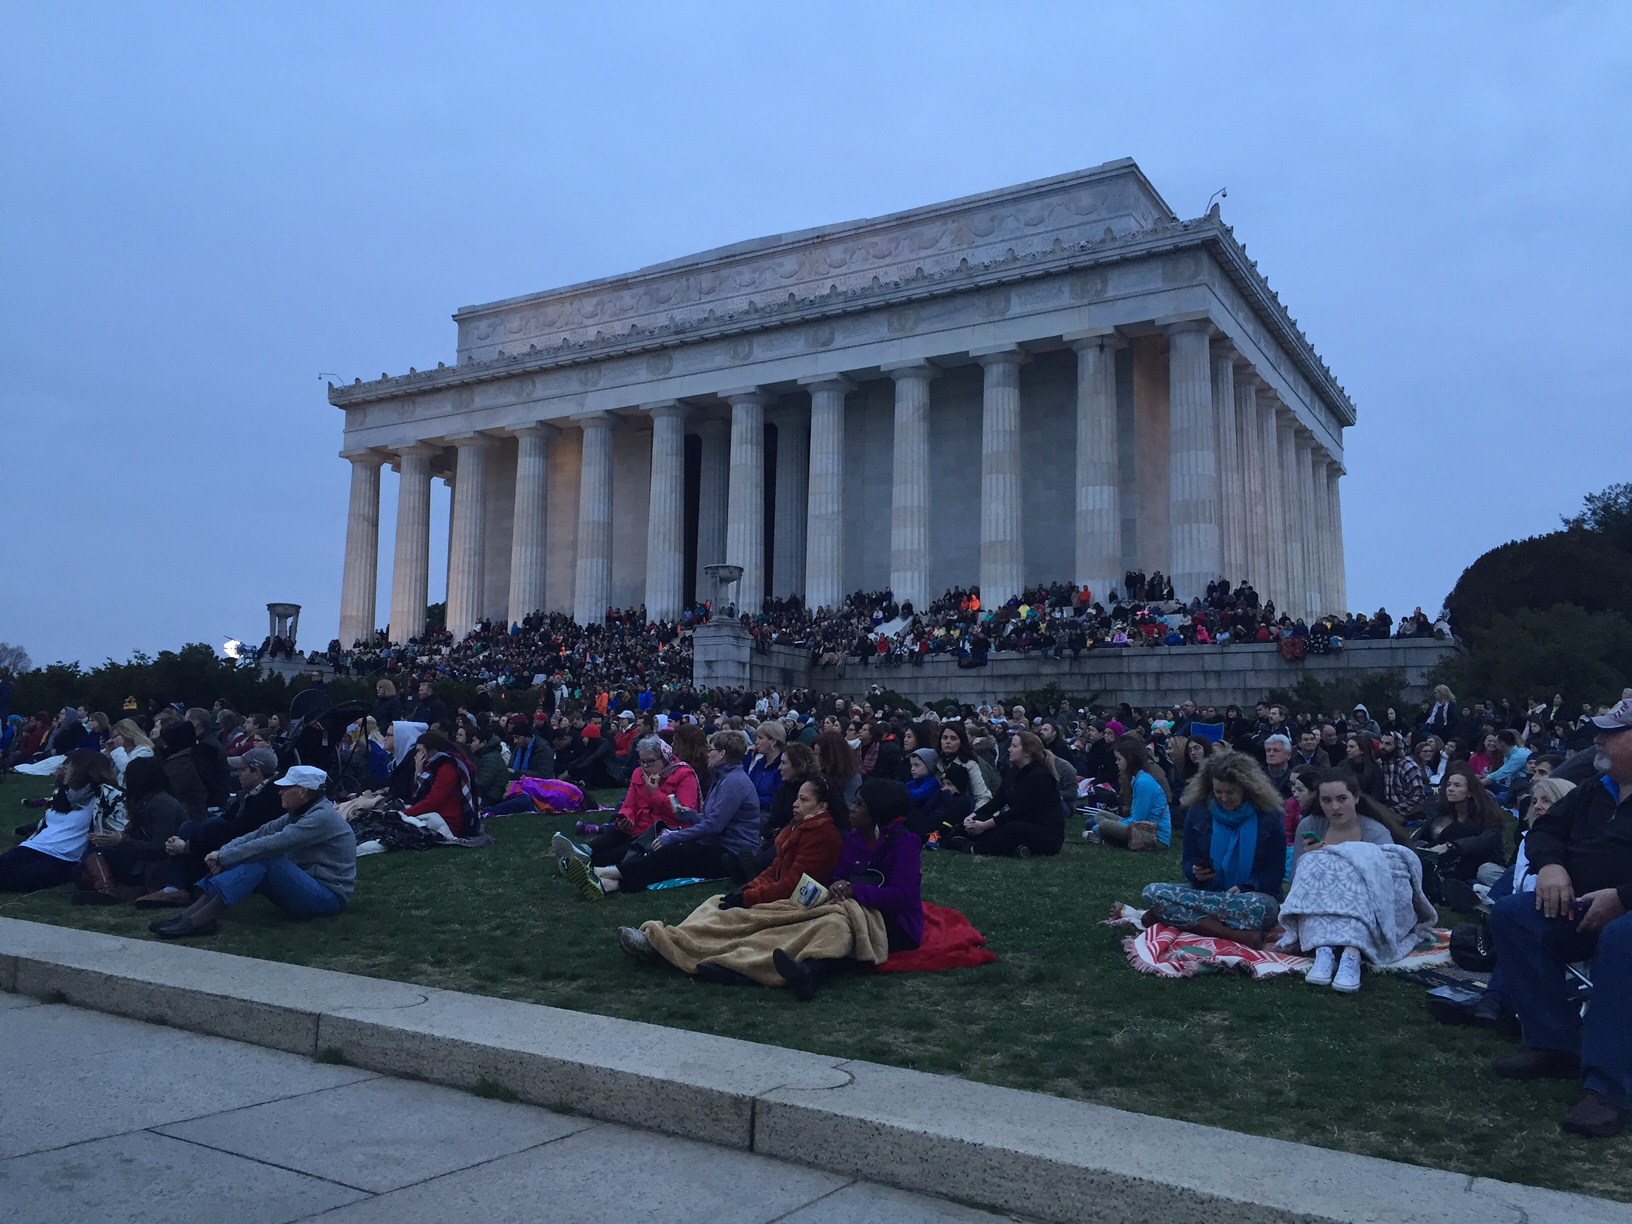 Thousands celebrate Easter sunrise at the Lincoln Memorial